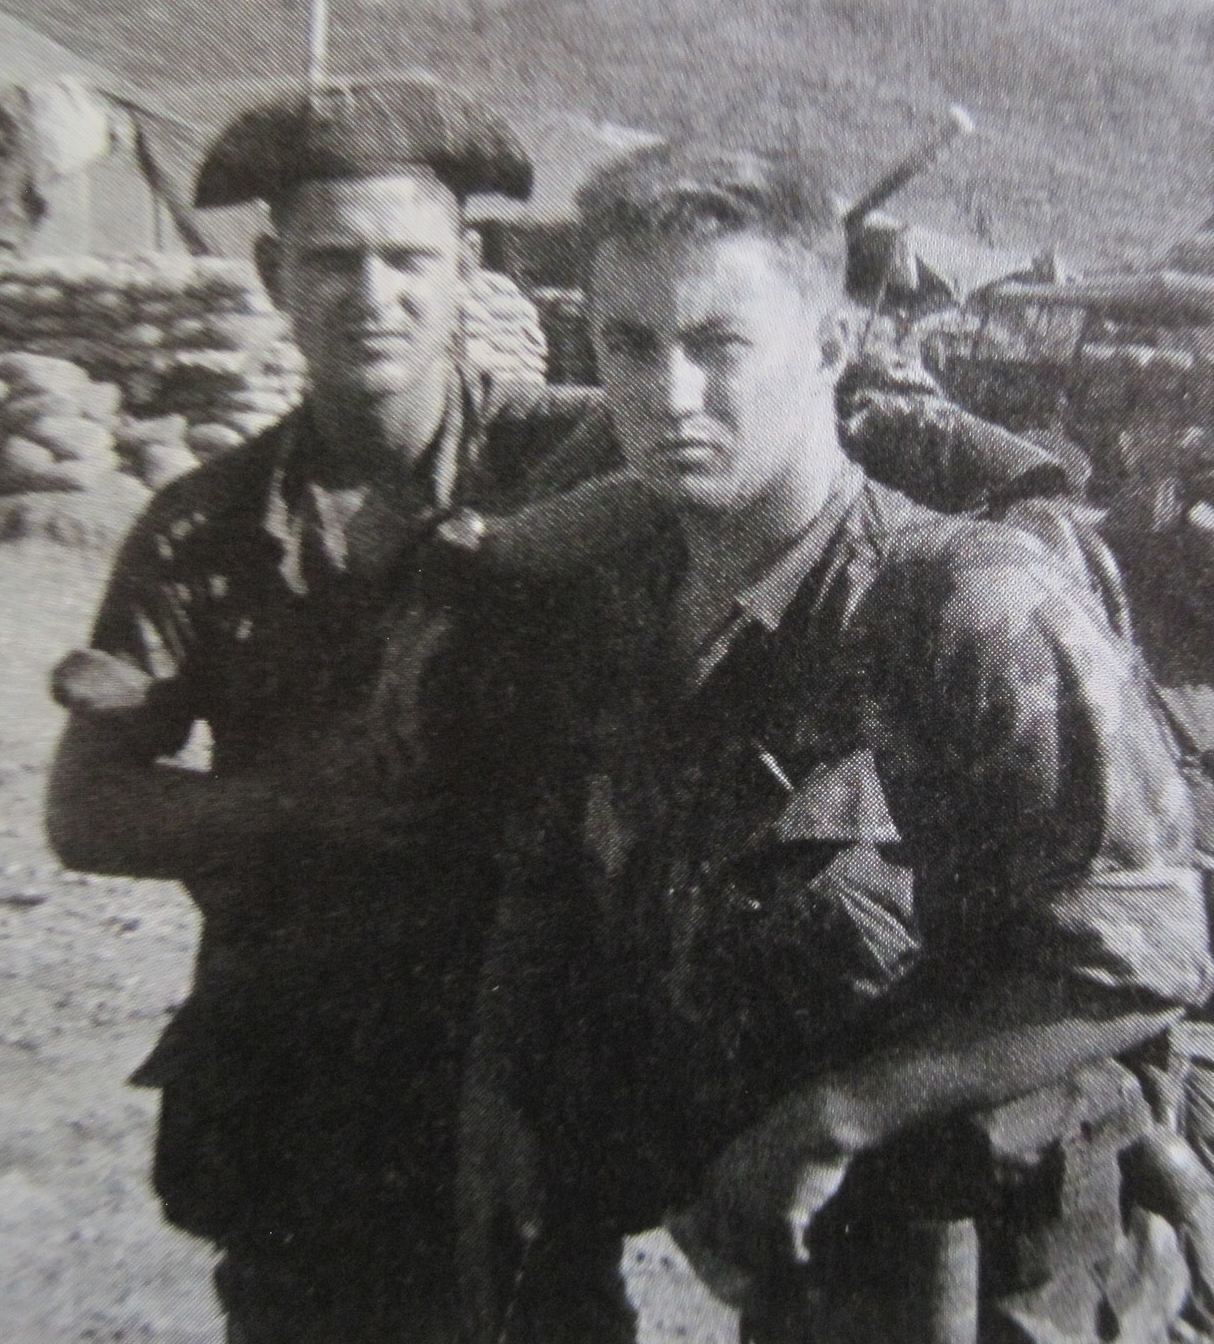 Larry Curtis and Bill Hand, both became casualties on Signal Hill